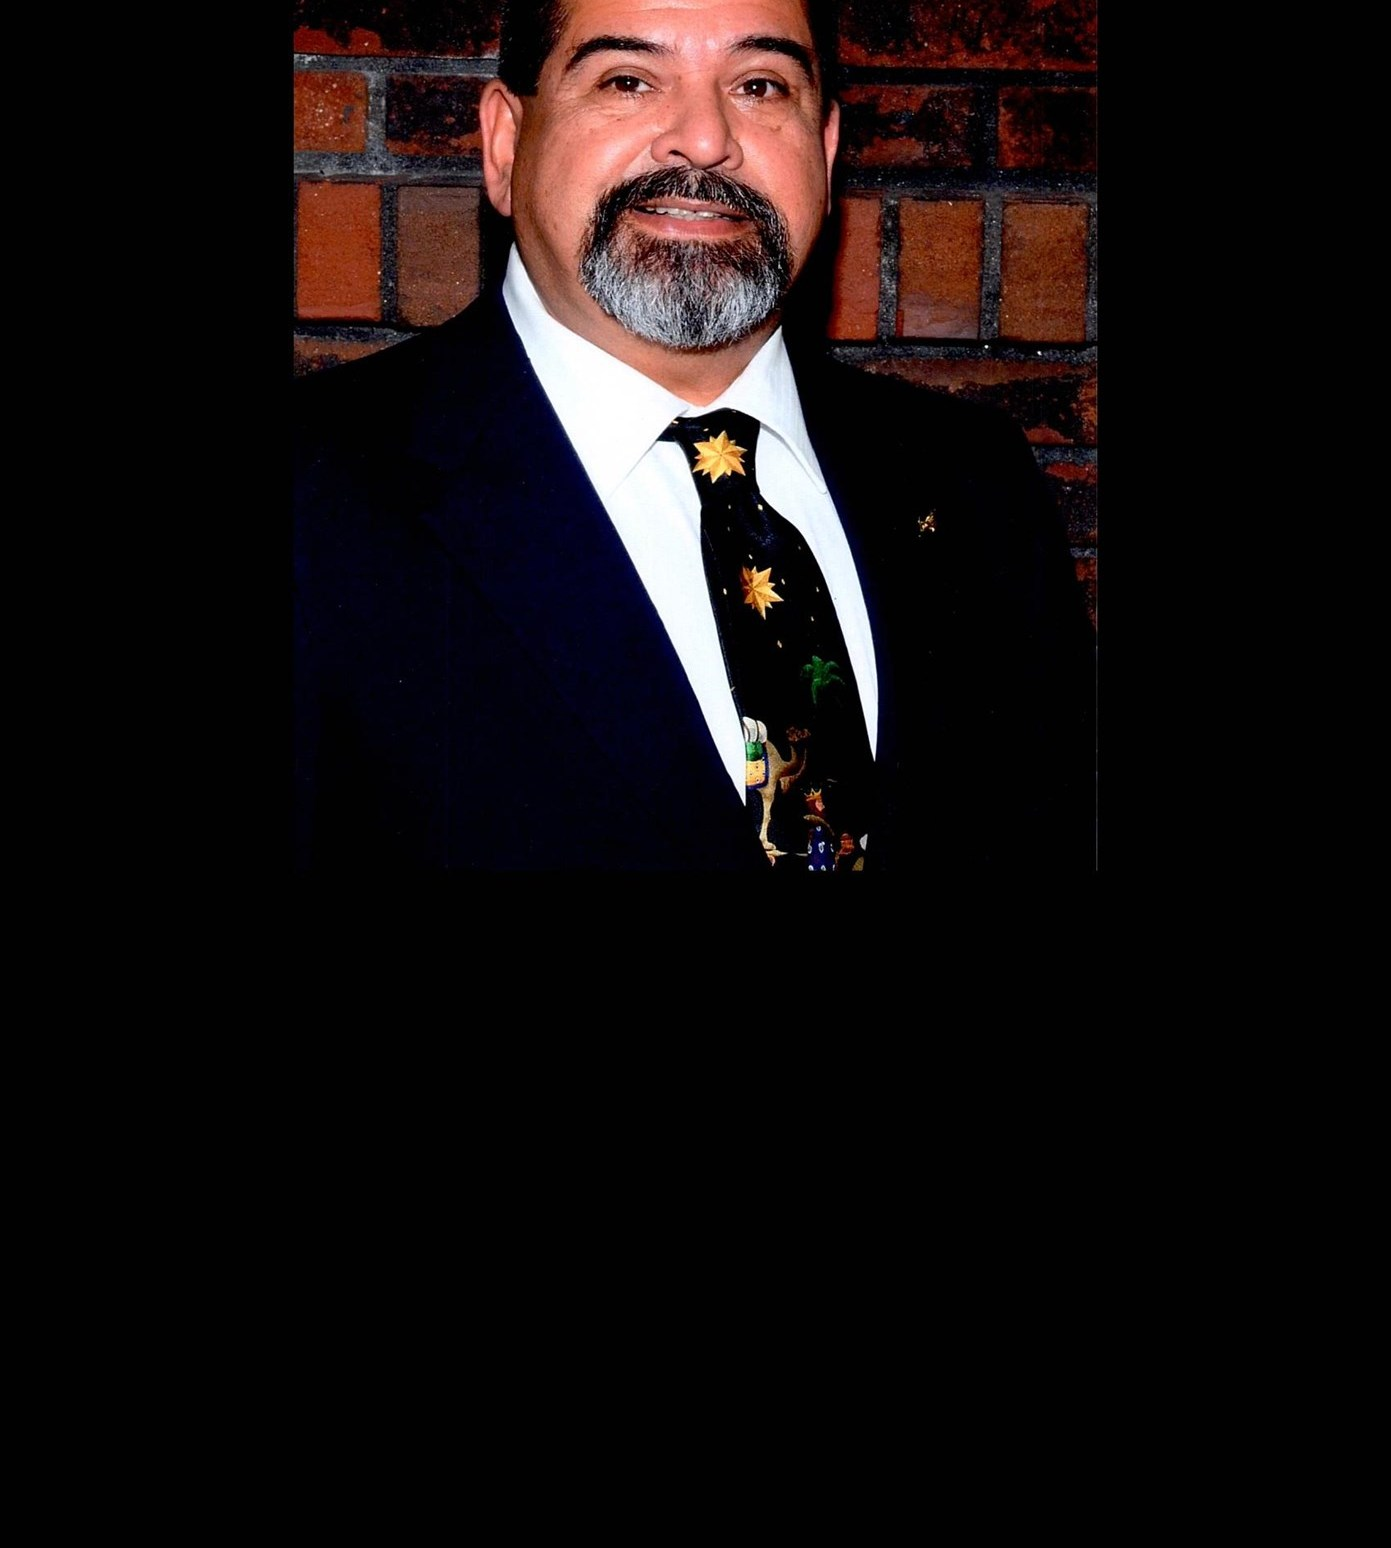 Smith Funeral Home Winder Ga Obituaries : smith, funeral, winder, obituaries, Meguel, Chavez,, Obituary, Winder,